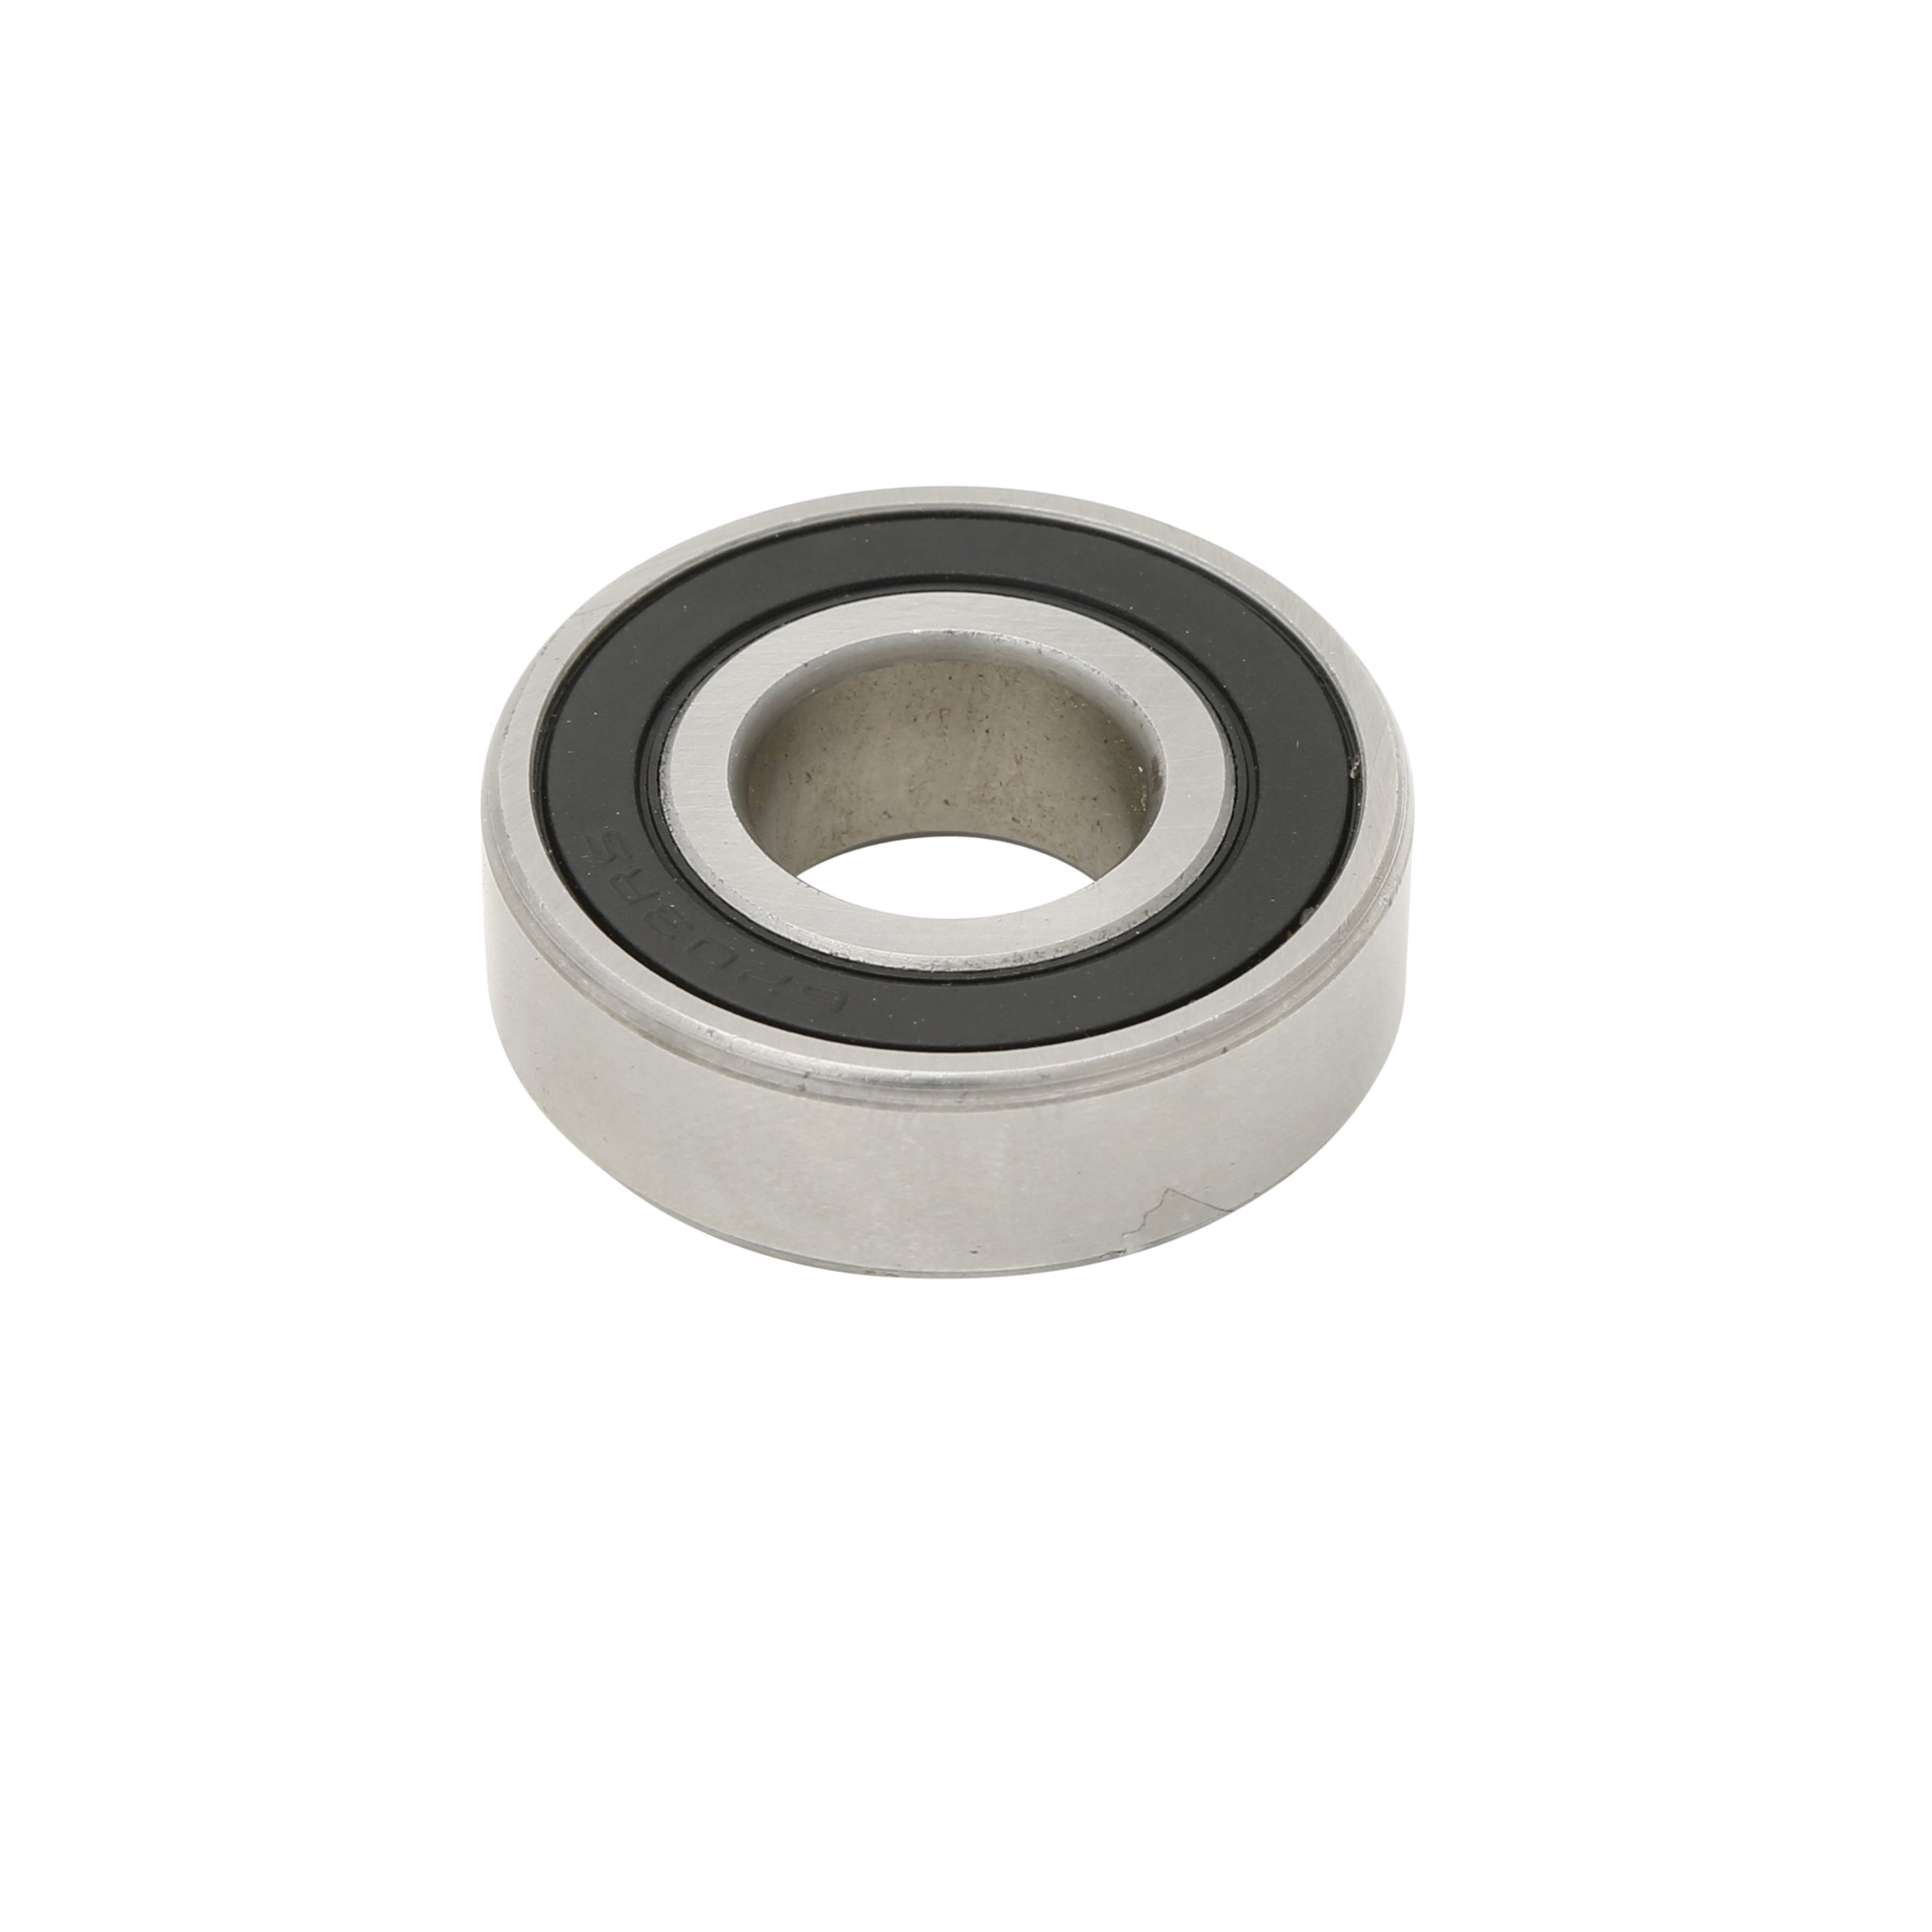 Clutch & Flywheel Pilot Bearing • 1928-48